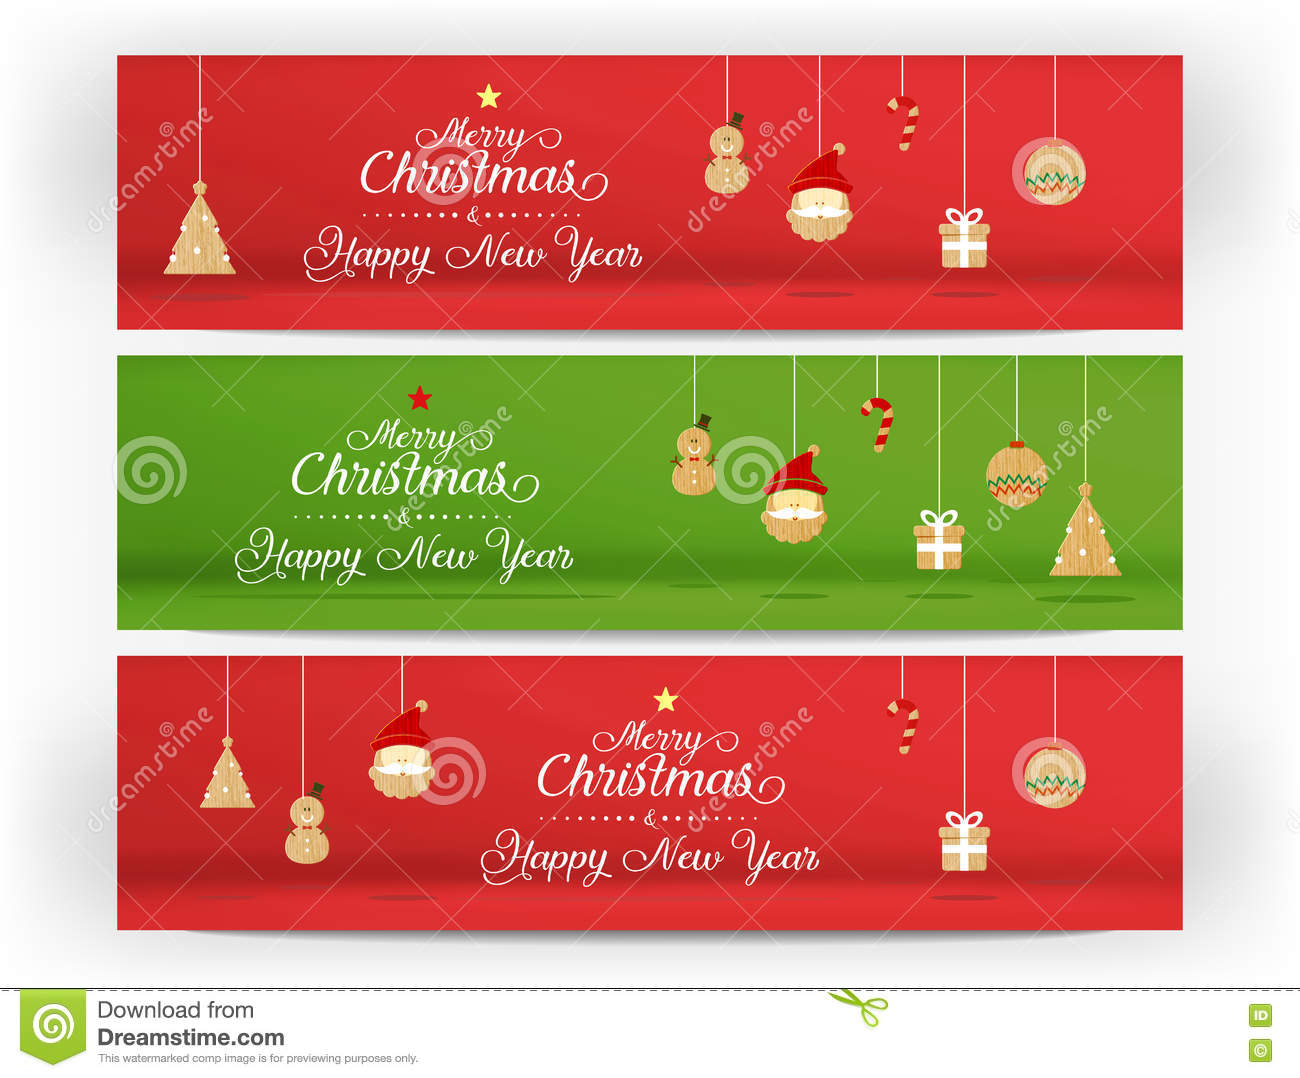 vectorred and green merry christmas and happy new year and icon